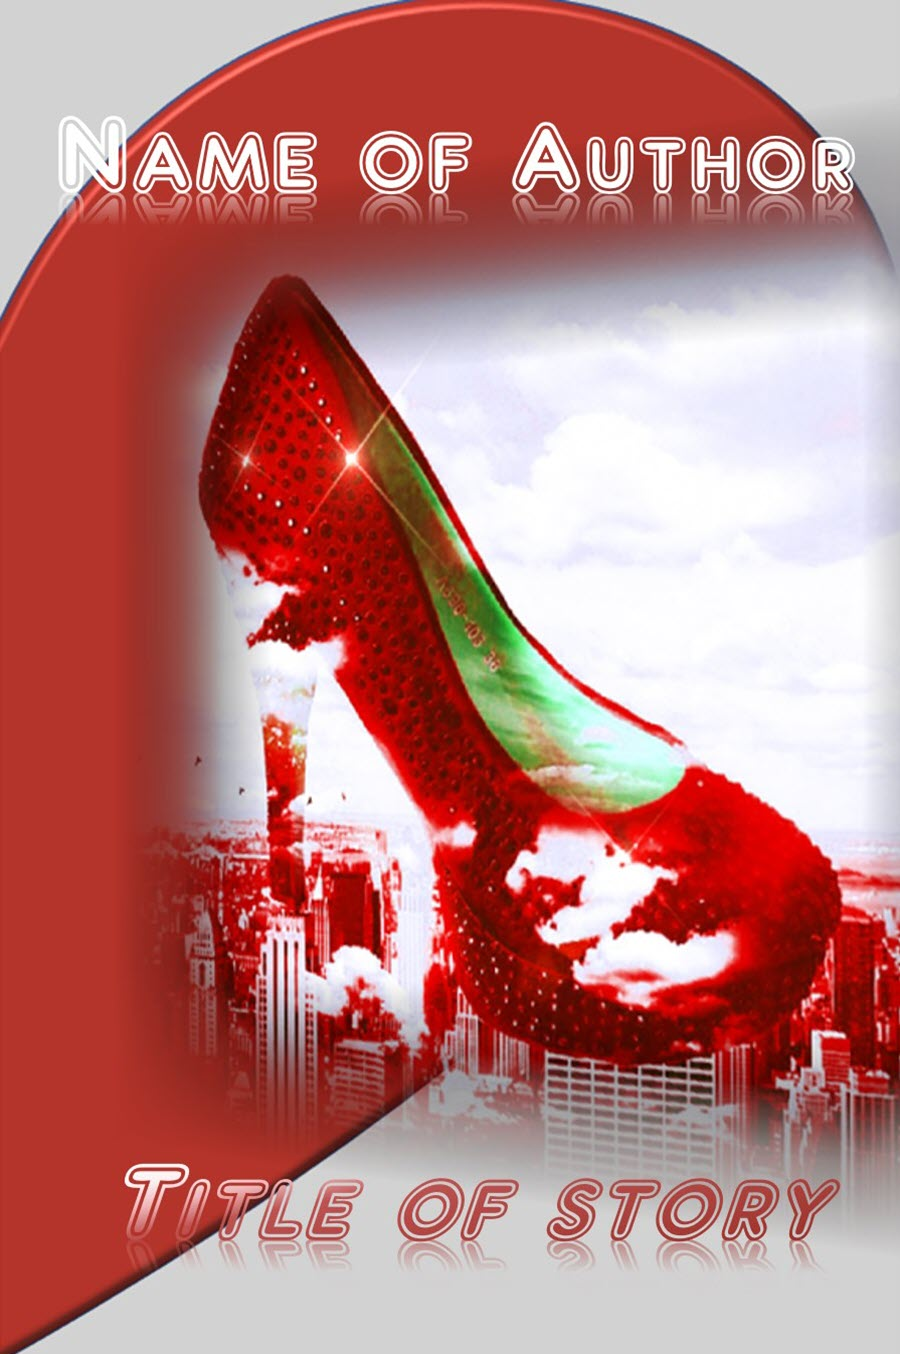 Group I. Red Pump Heart of City